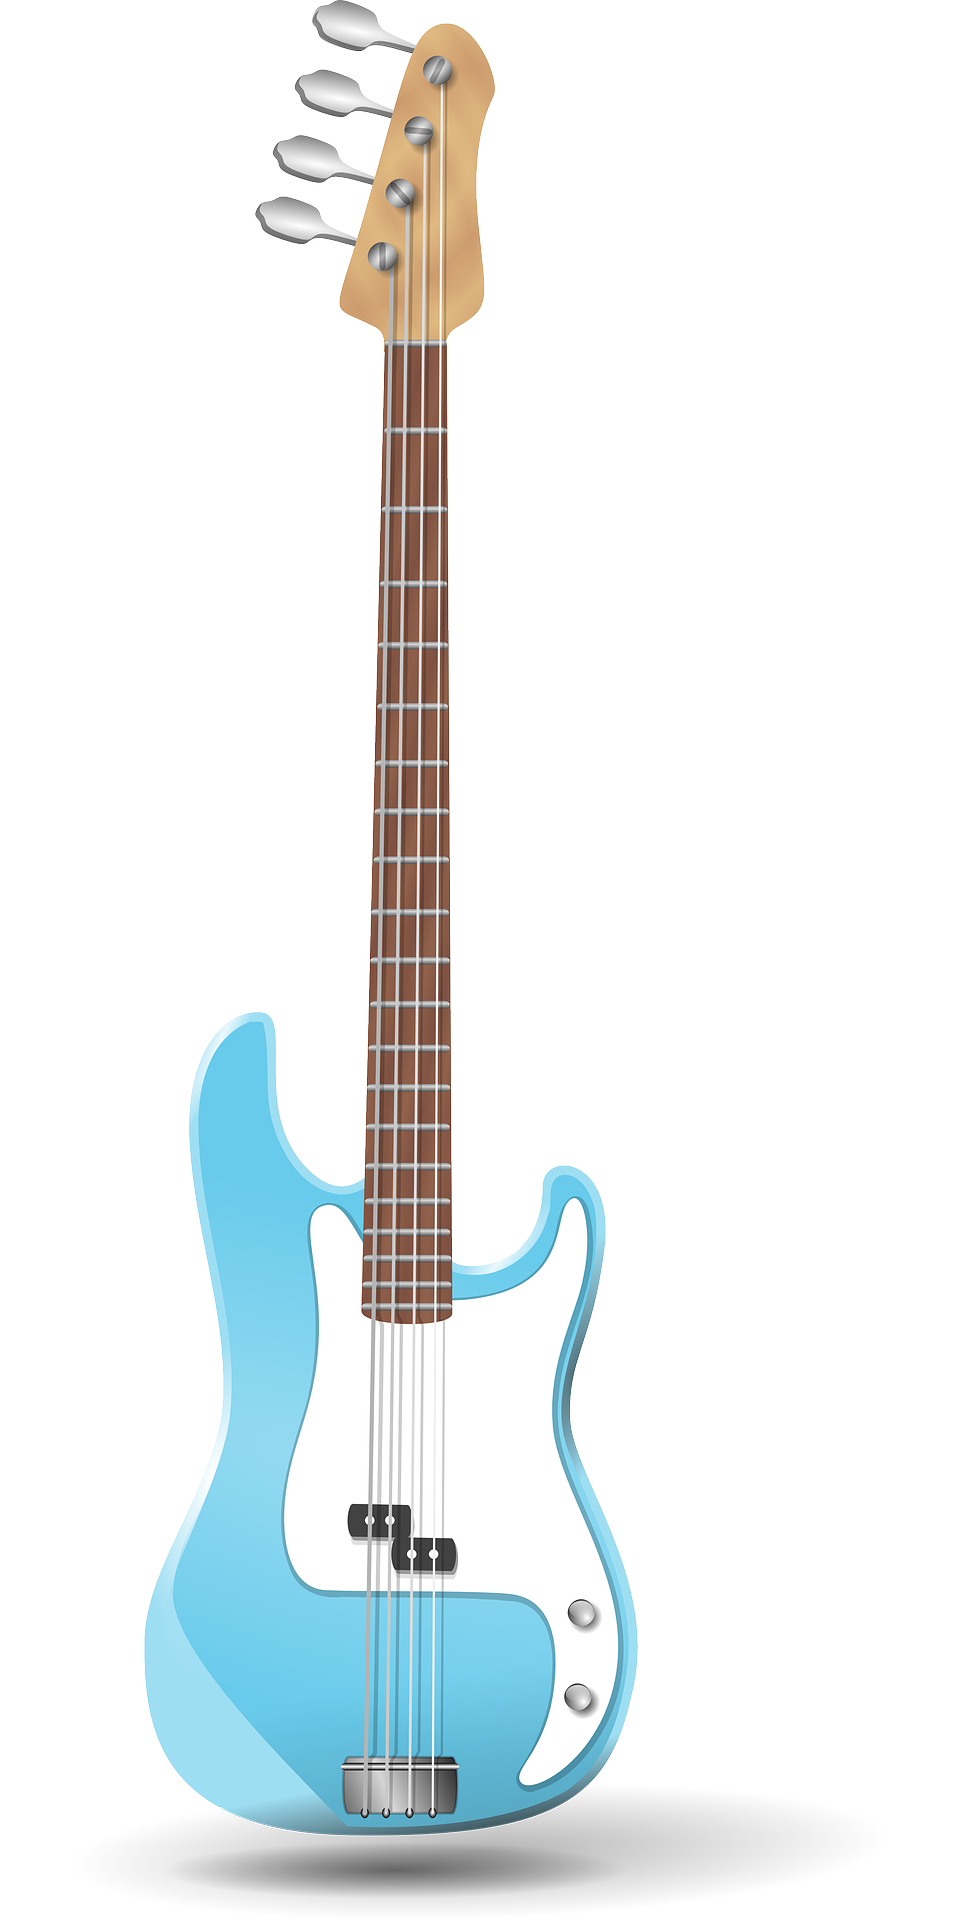 Drawing guitar eletric. Electric music blue brown